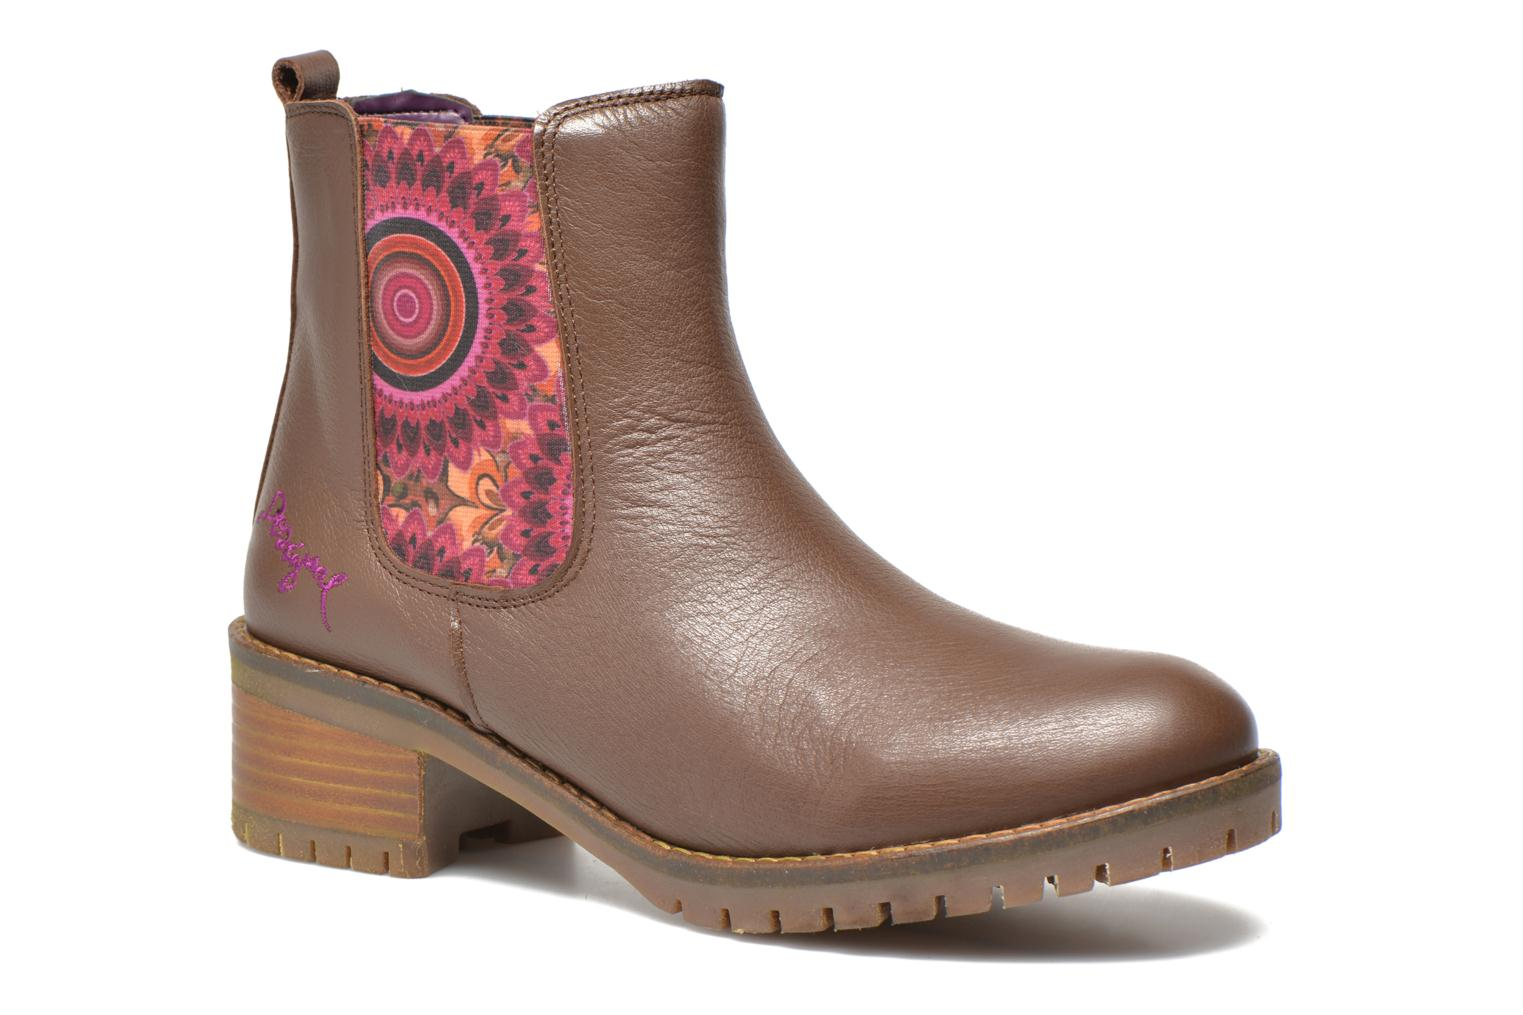 Bottines et boots Desigual Charly Marron vue détail/paire